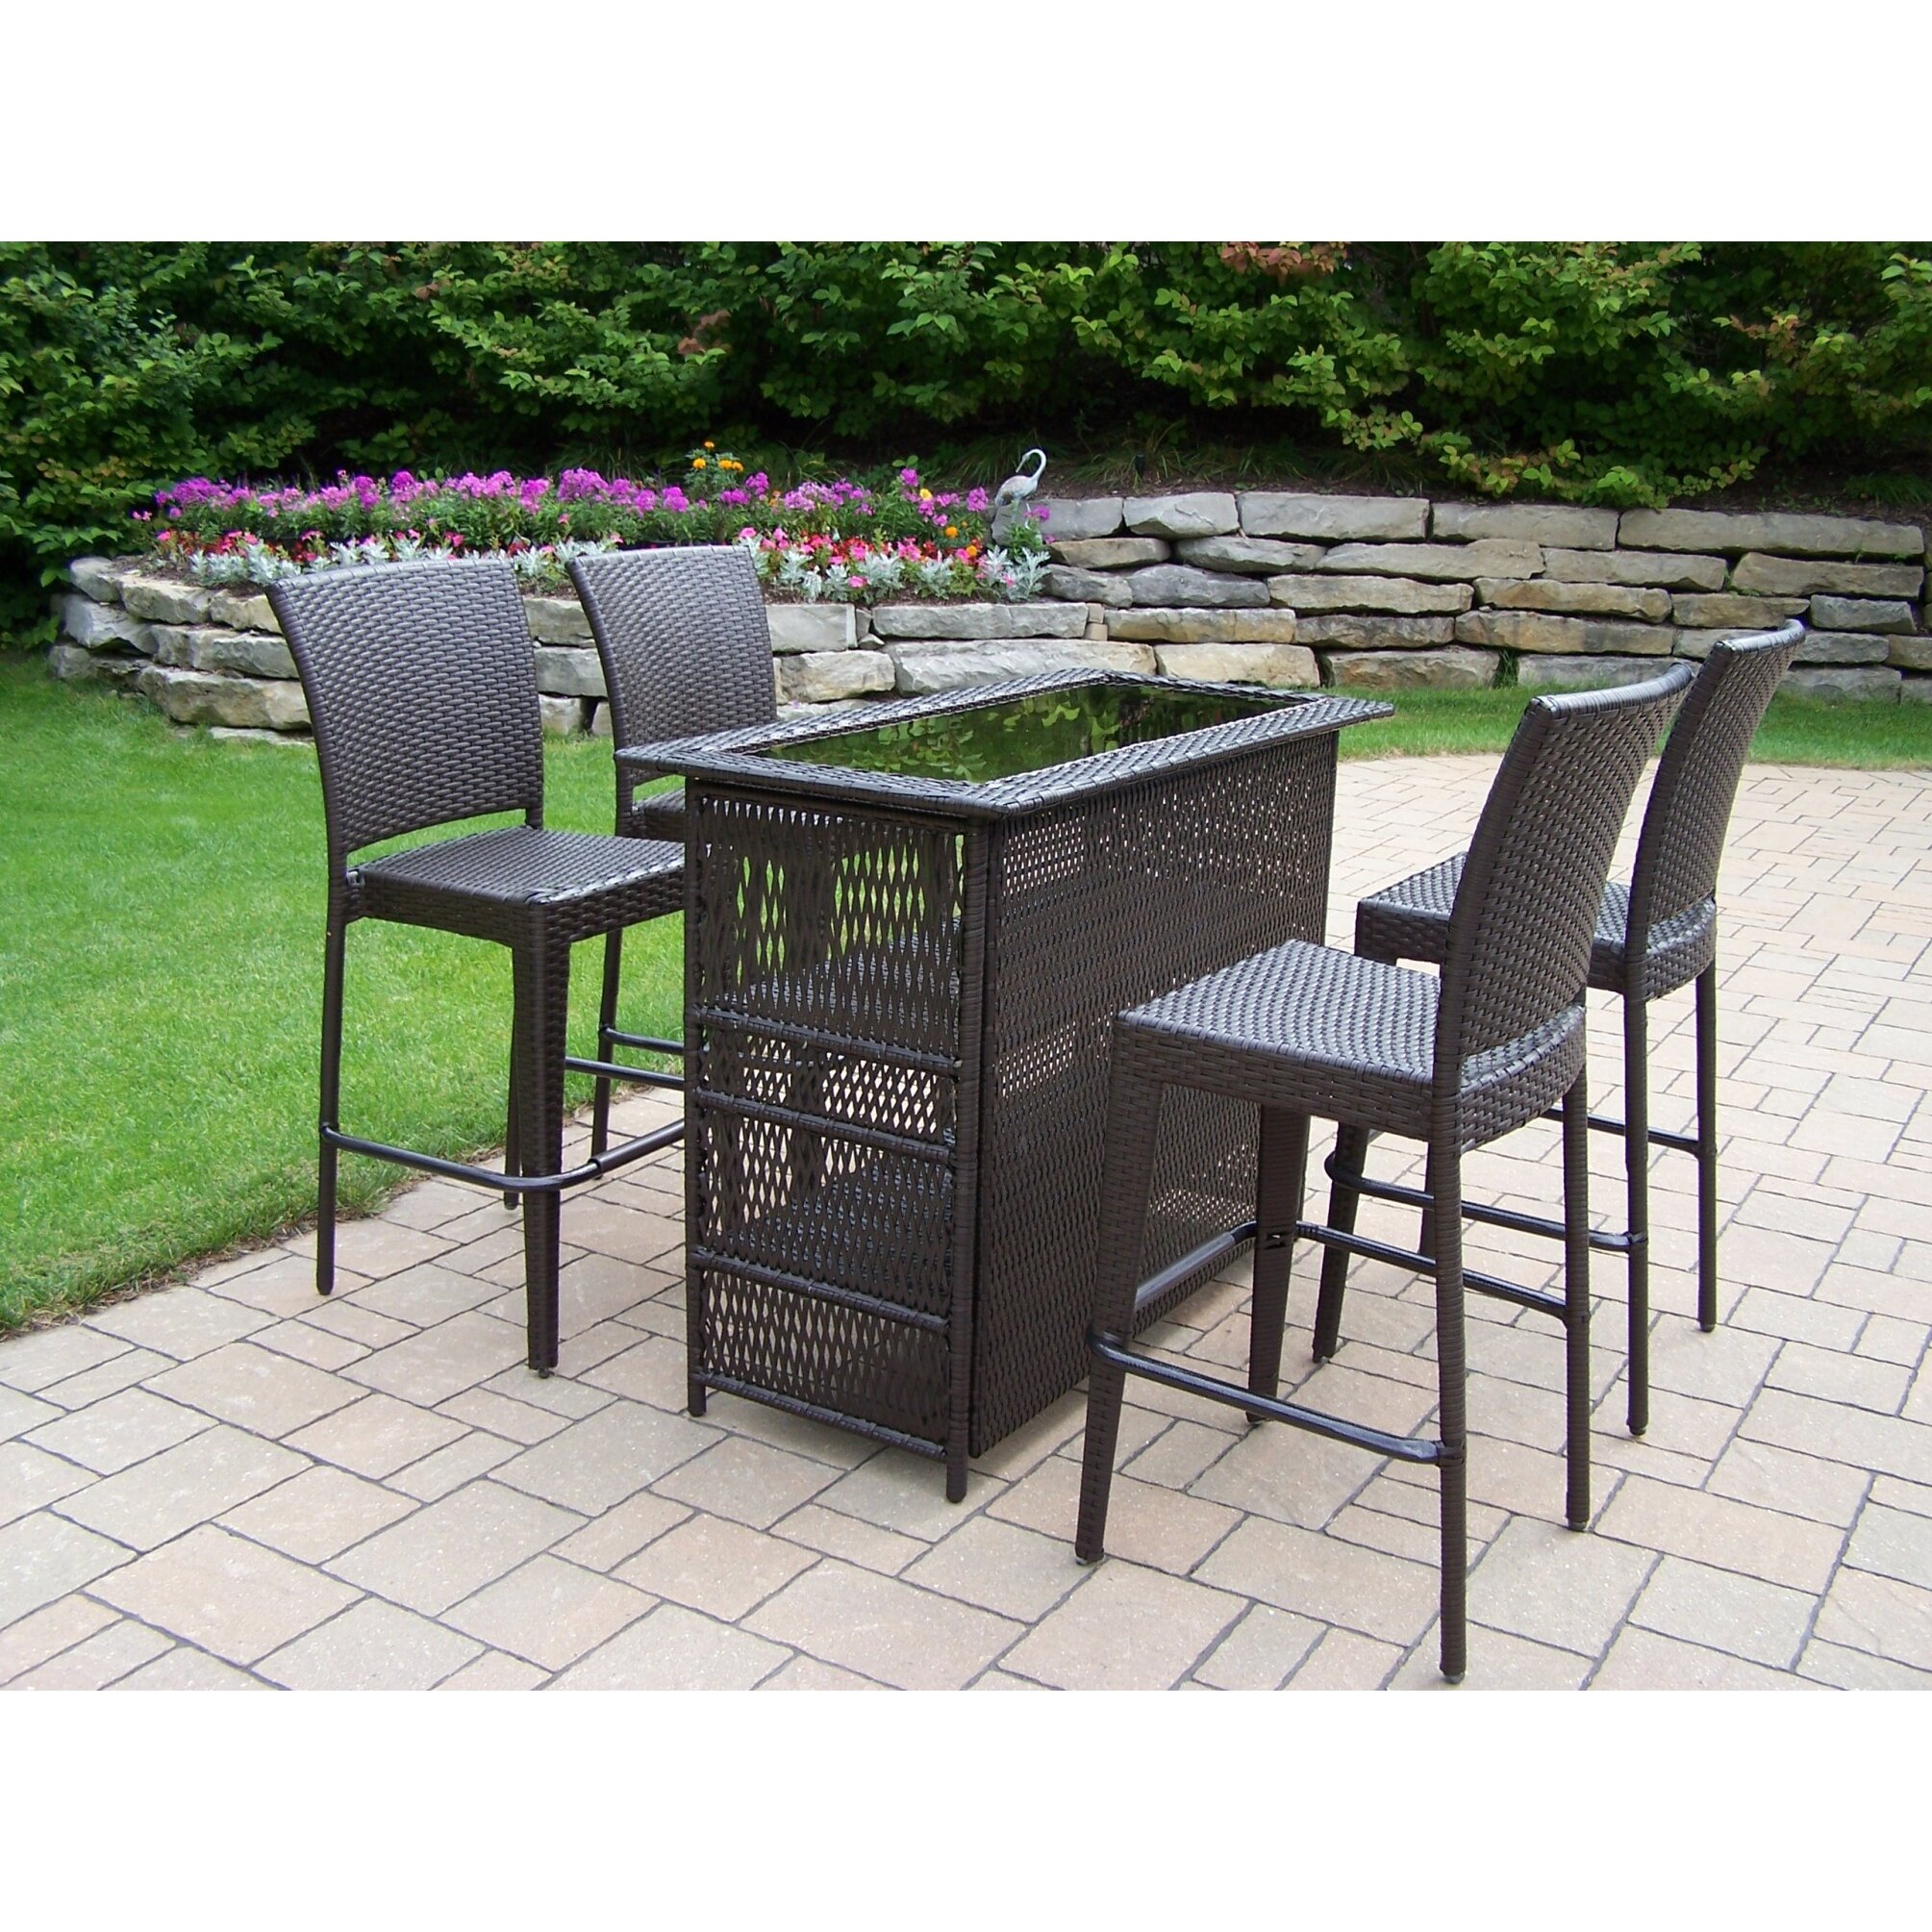 Oakland Living Elite Resin Wicker 5 Piece Bar Set | Wayfair on Outdoor Living Wicker id=67274